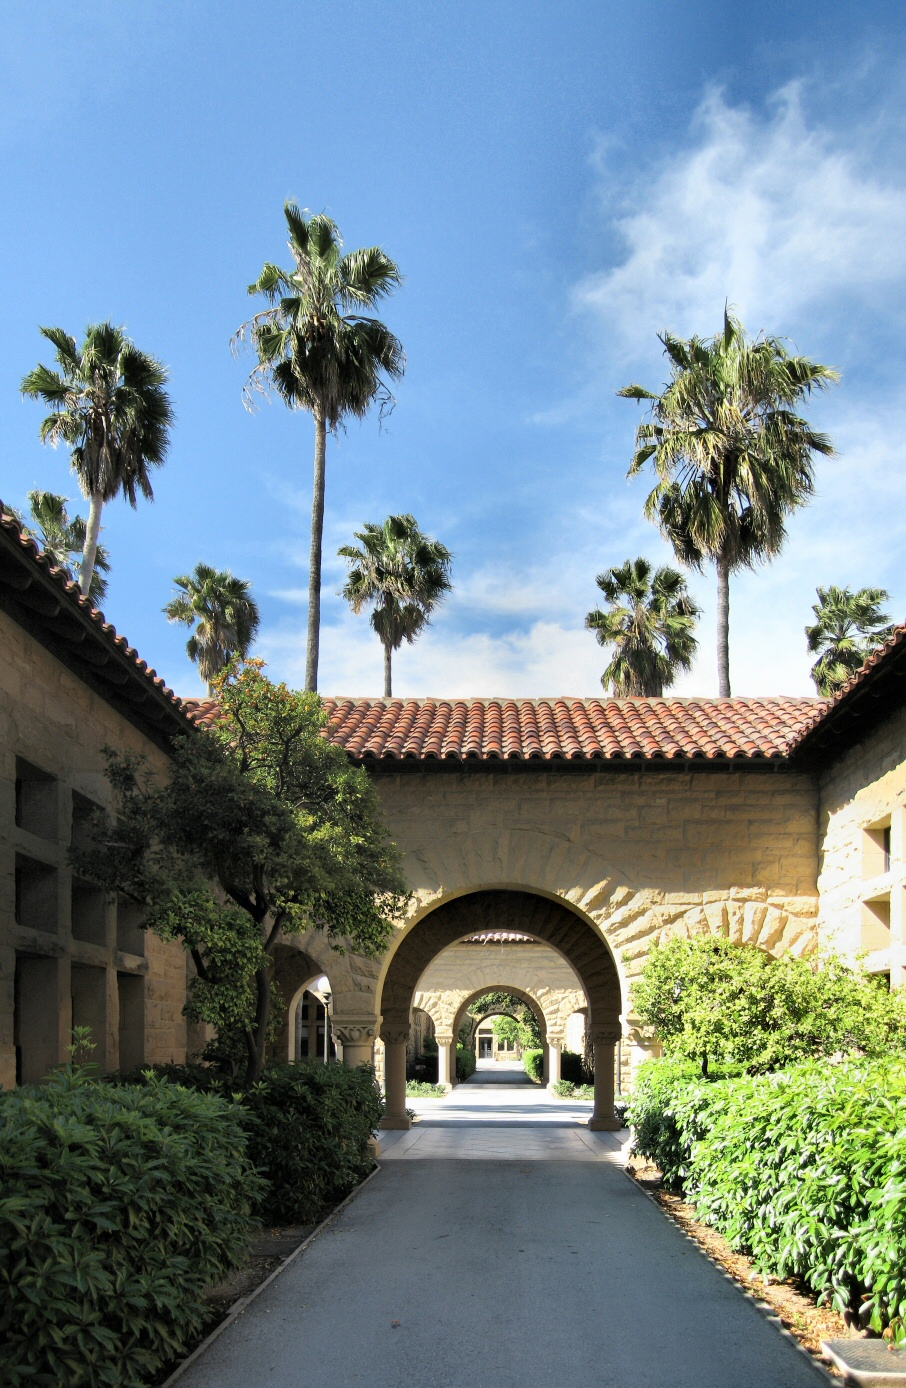 http://upload.wikimedia.org/wikipedia/commons/f/f4/Stanford_University_Walkway_Panorama.jpg